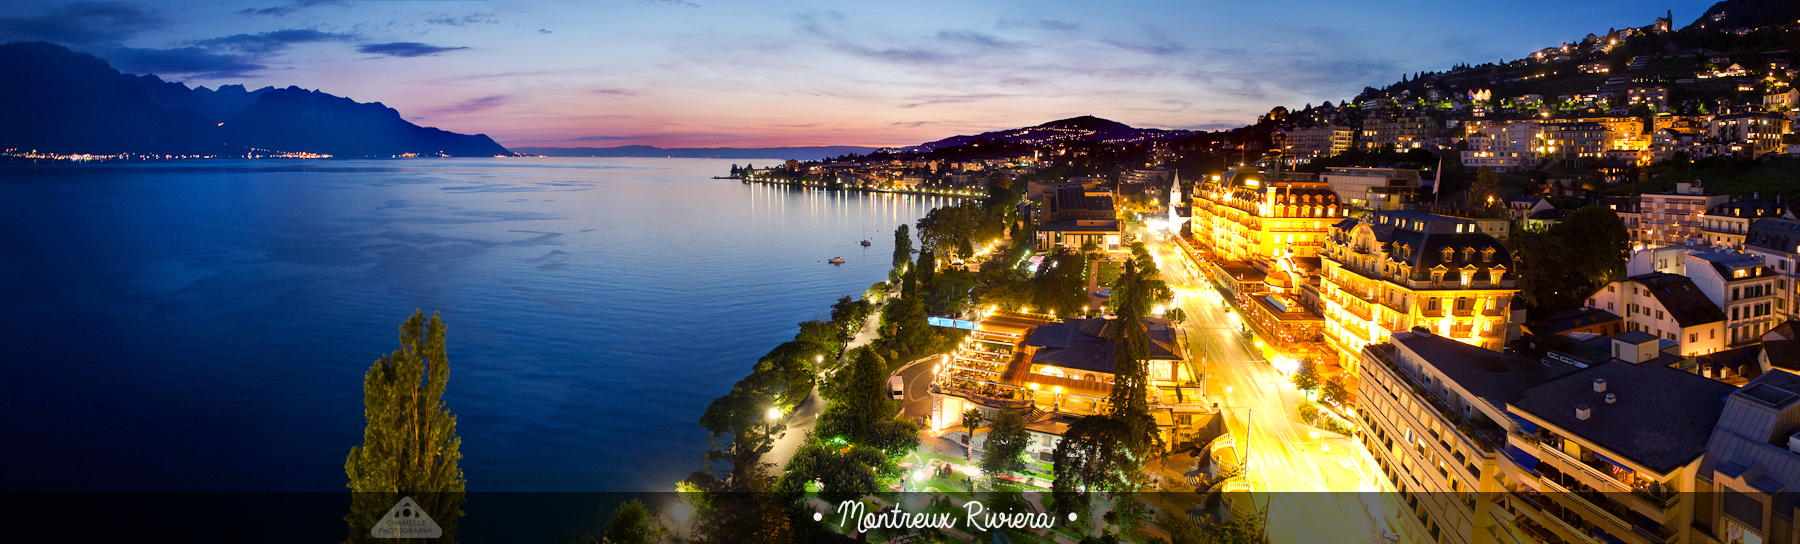 montreux-dusk-panorama-chamelle-photography